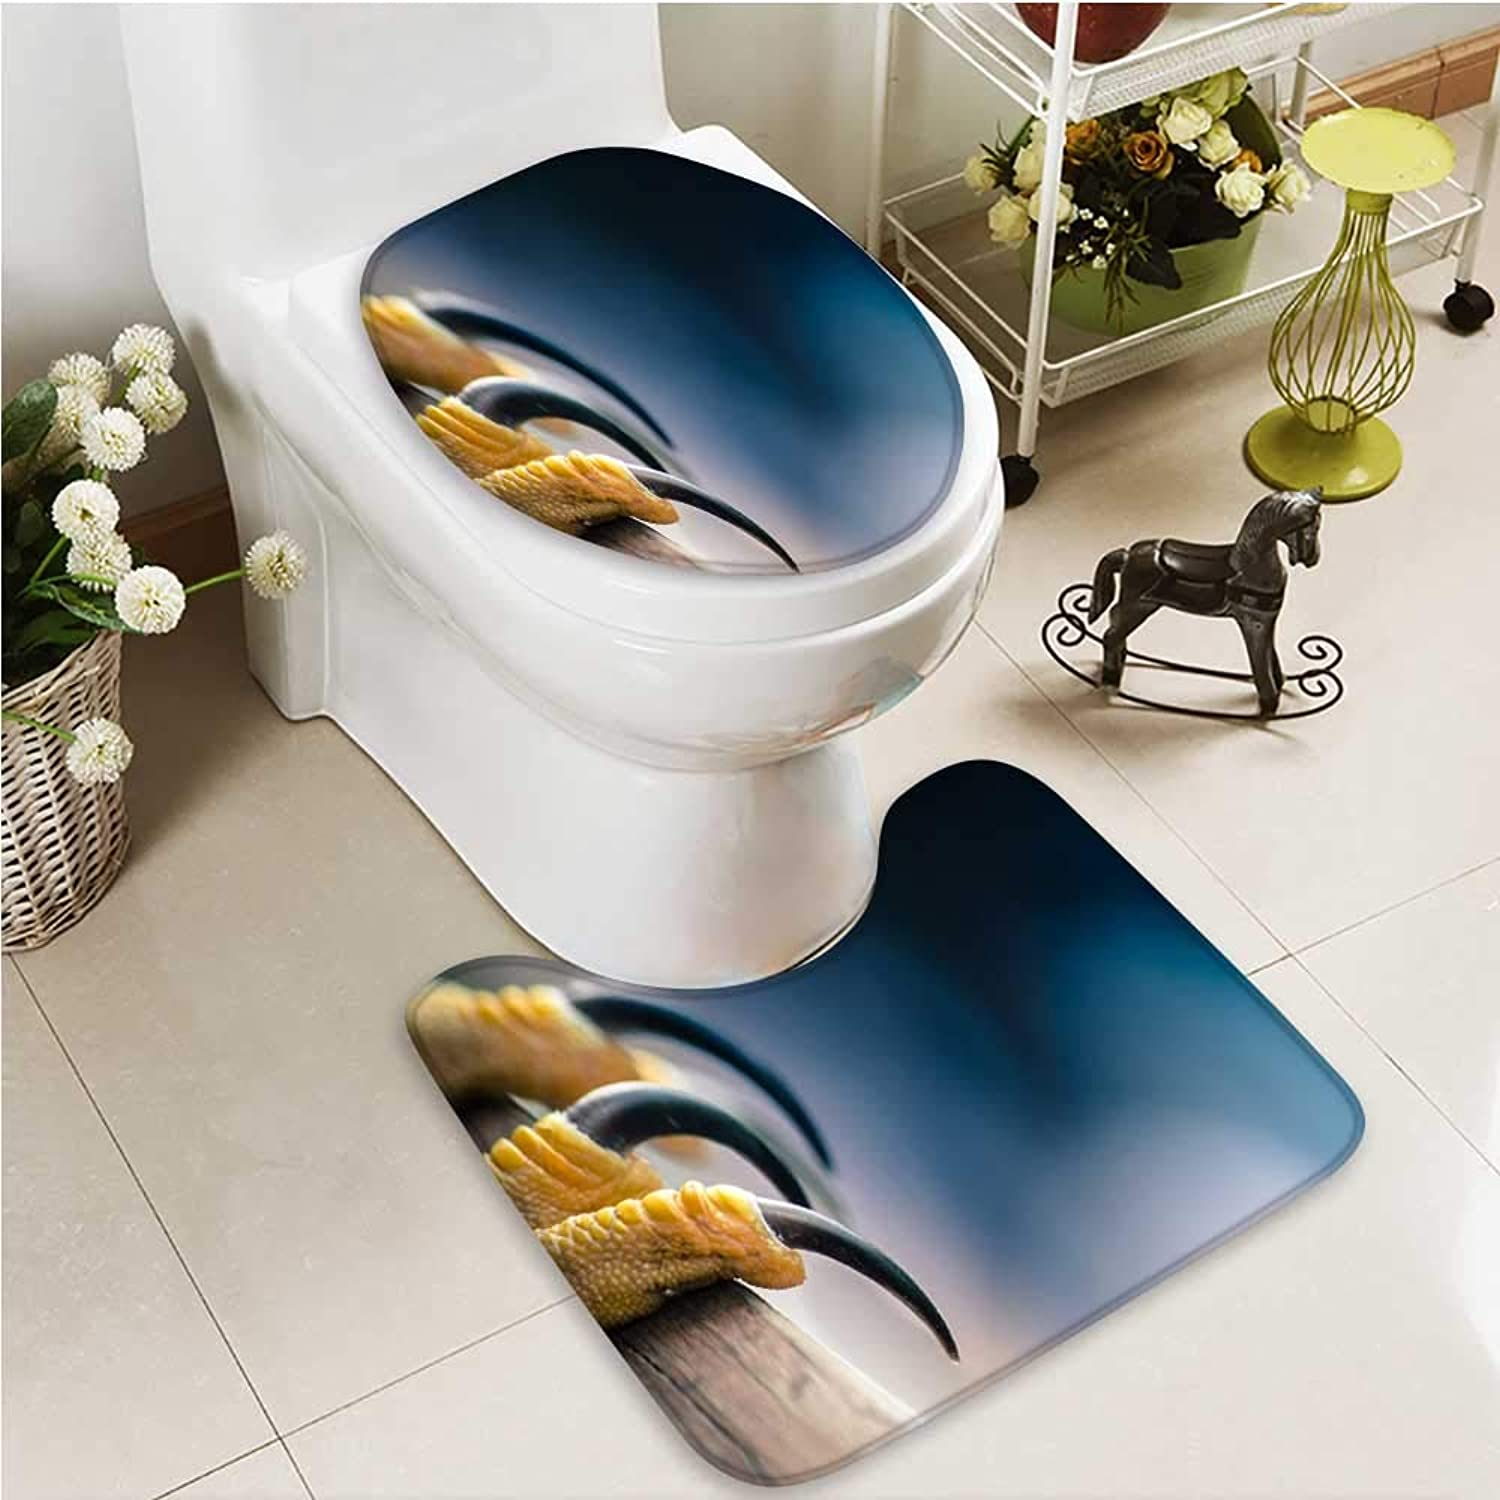 Printsonne Cushion Non-Slip Toilet Mat Sharp Talons Soft Non-Slip Water